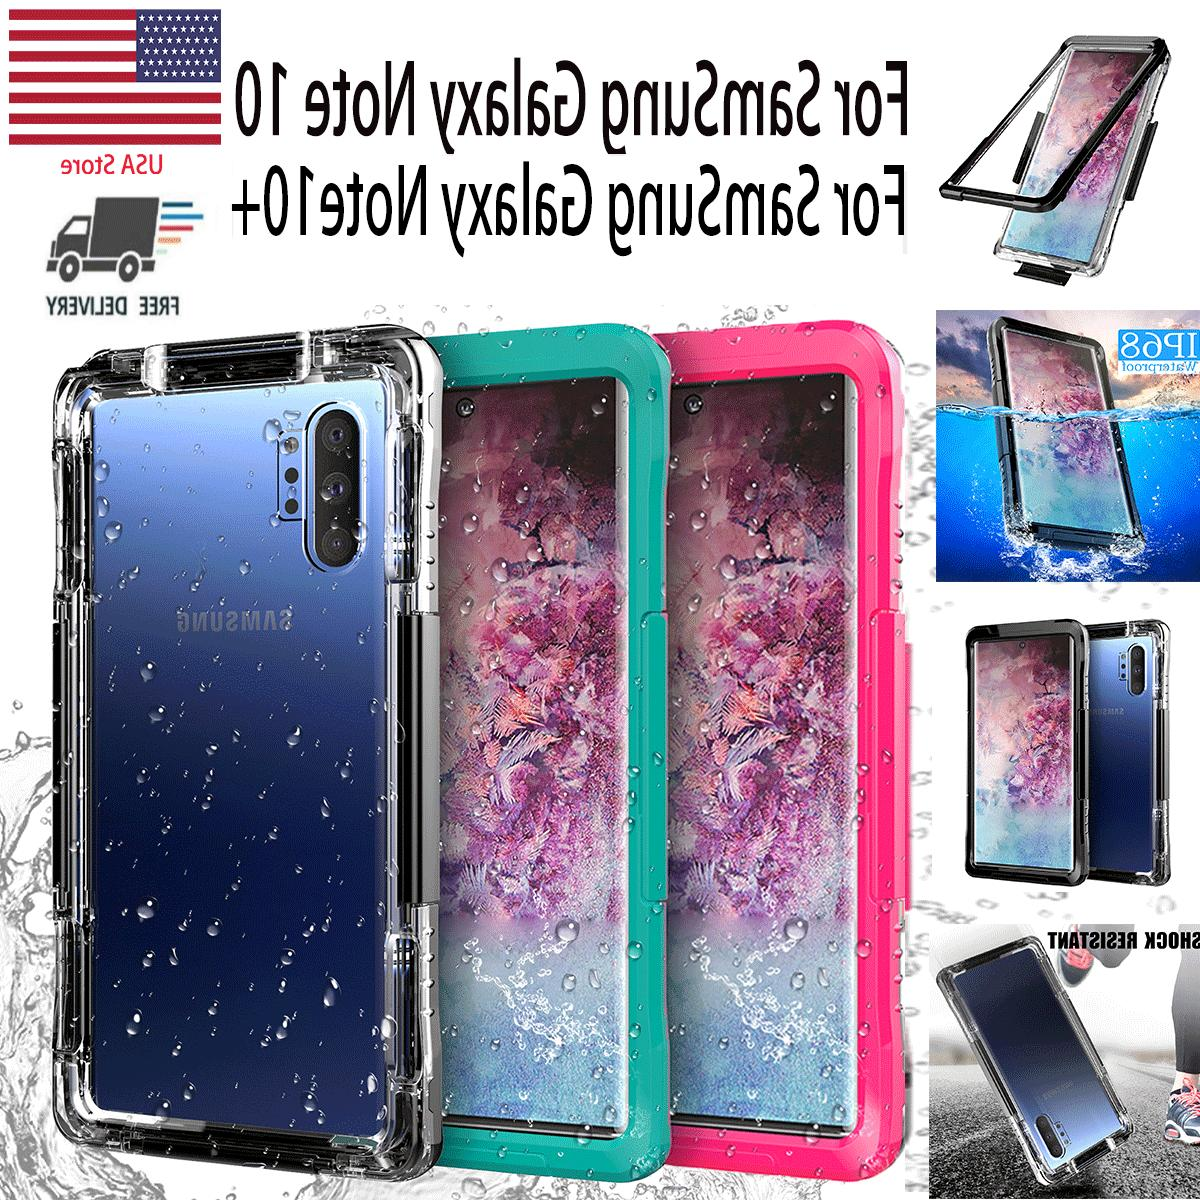 waterproof shockproof case cover for samsung galaxy